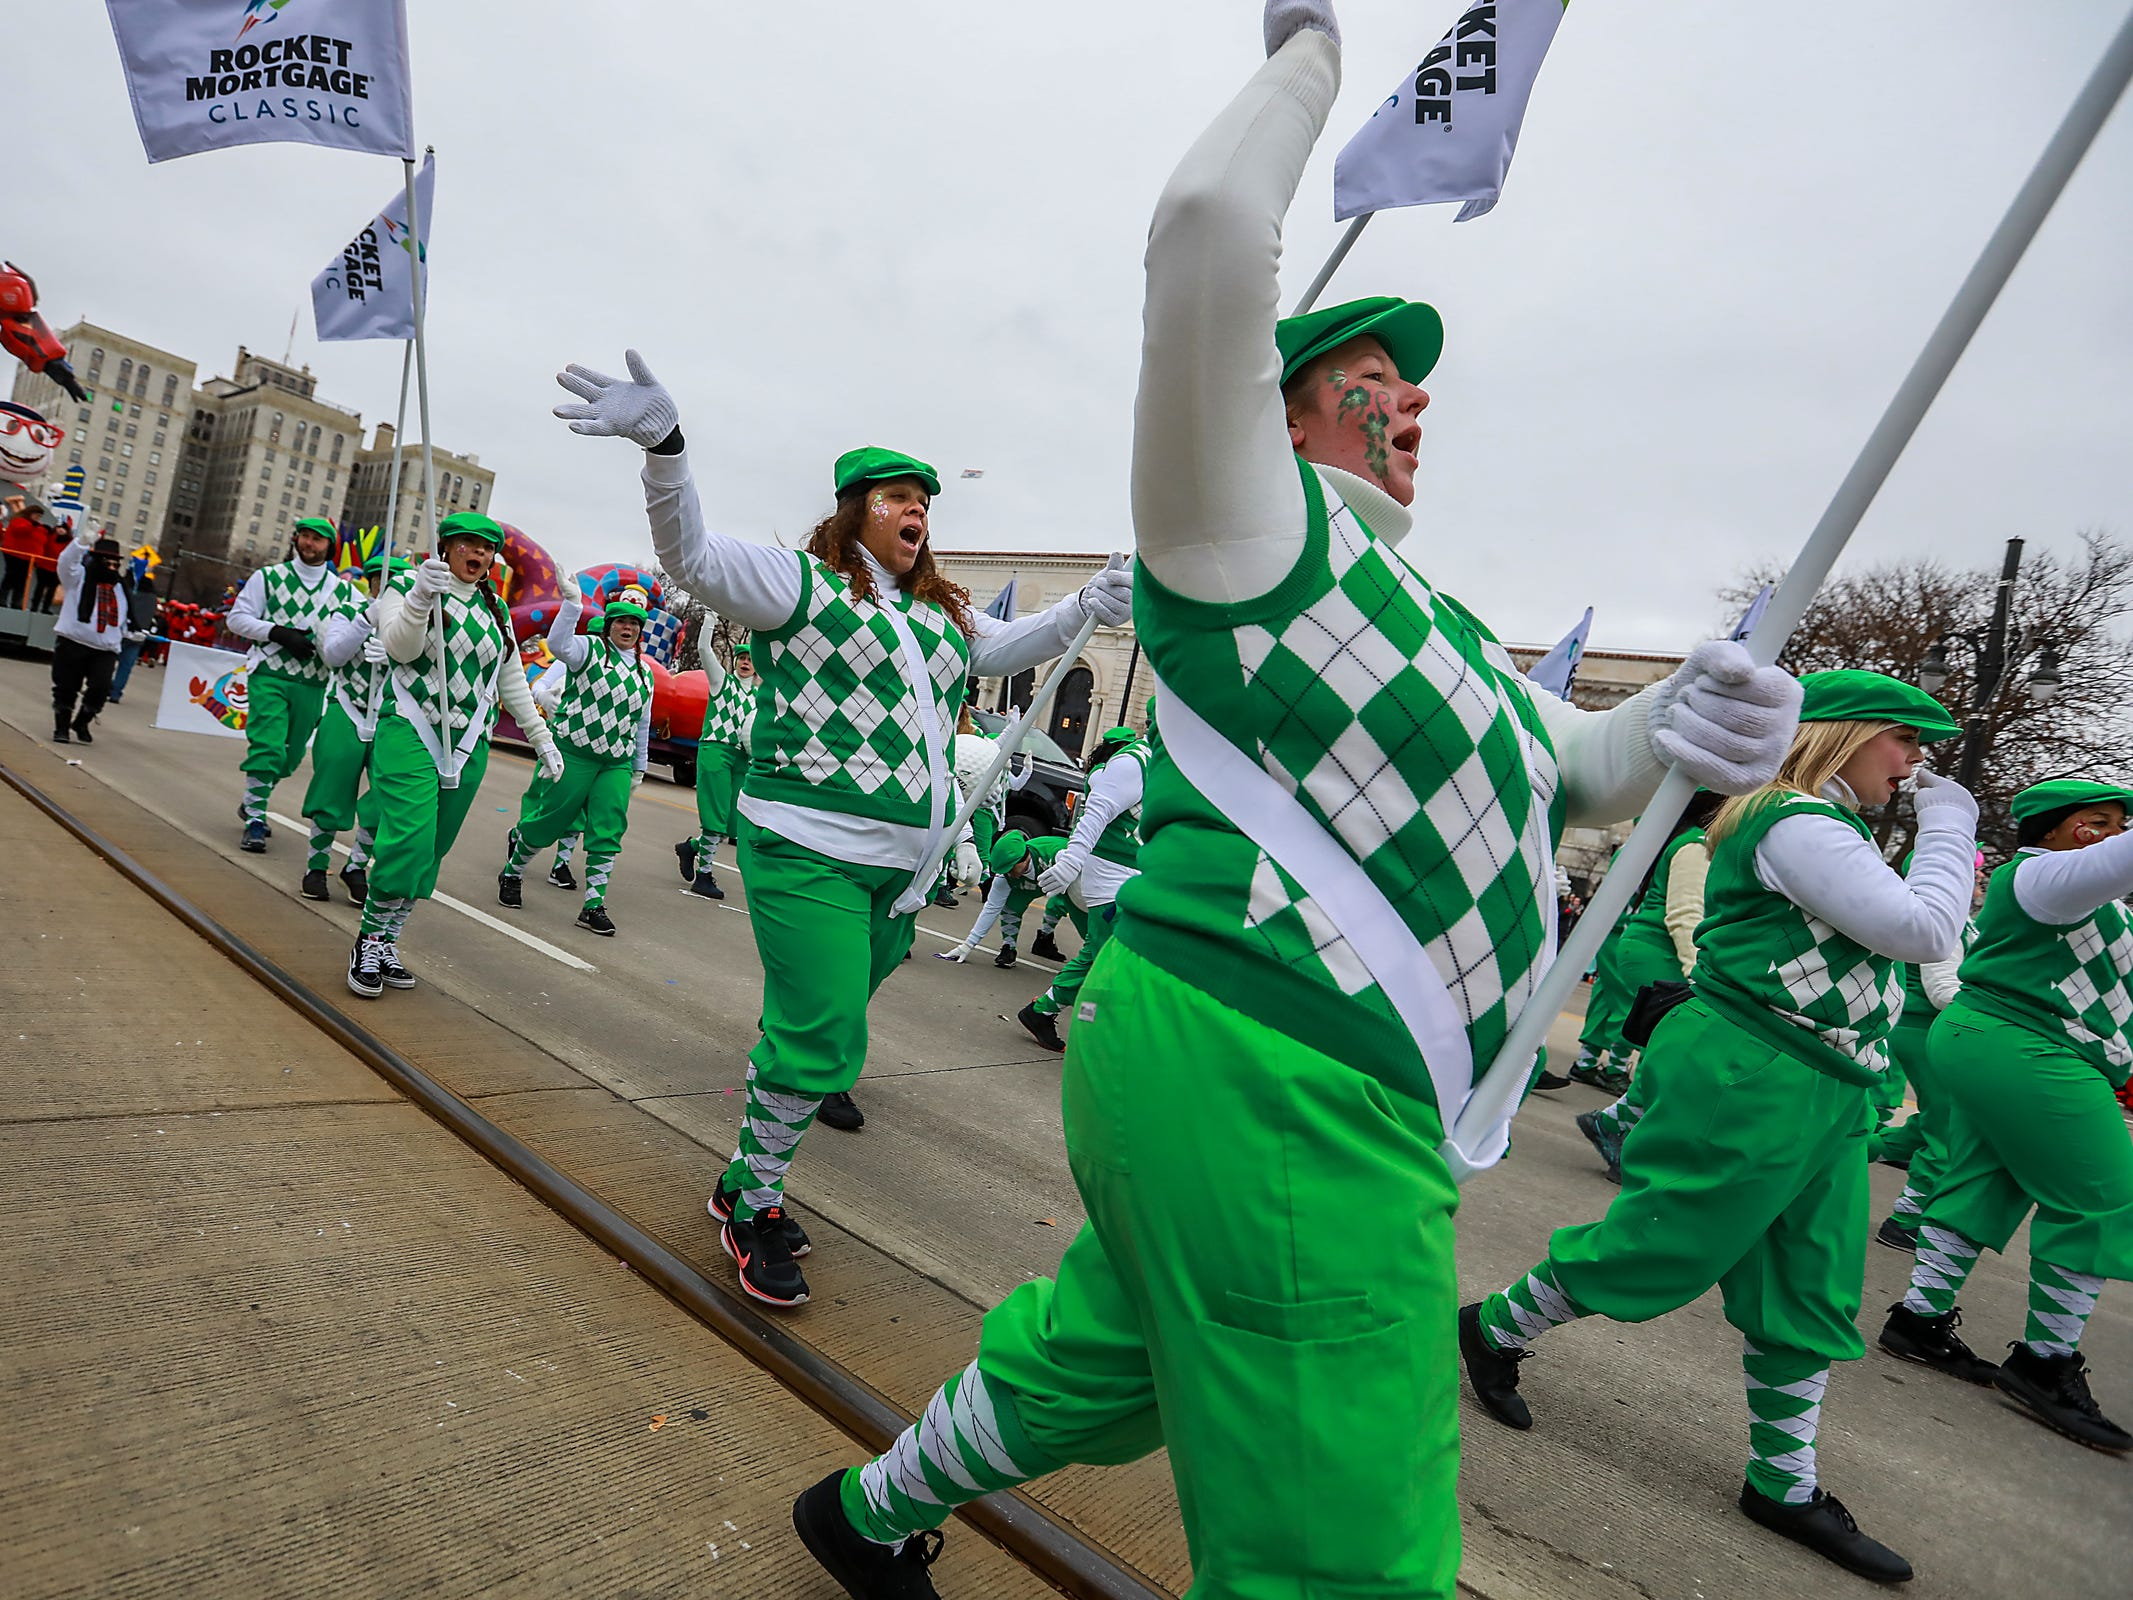 Parade marchers with Rocket Mortgage participate in America's Thanksgiving Parade in Detroit on Thursday, Nov. 22, 2018.